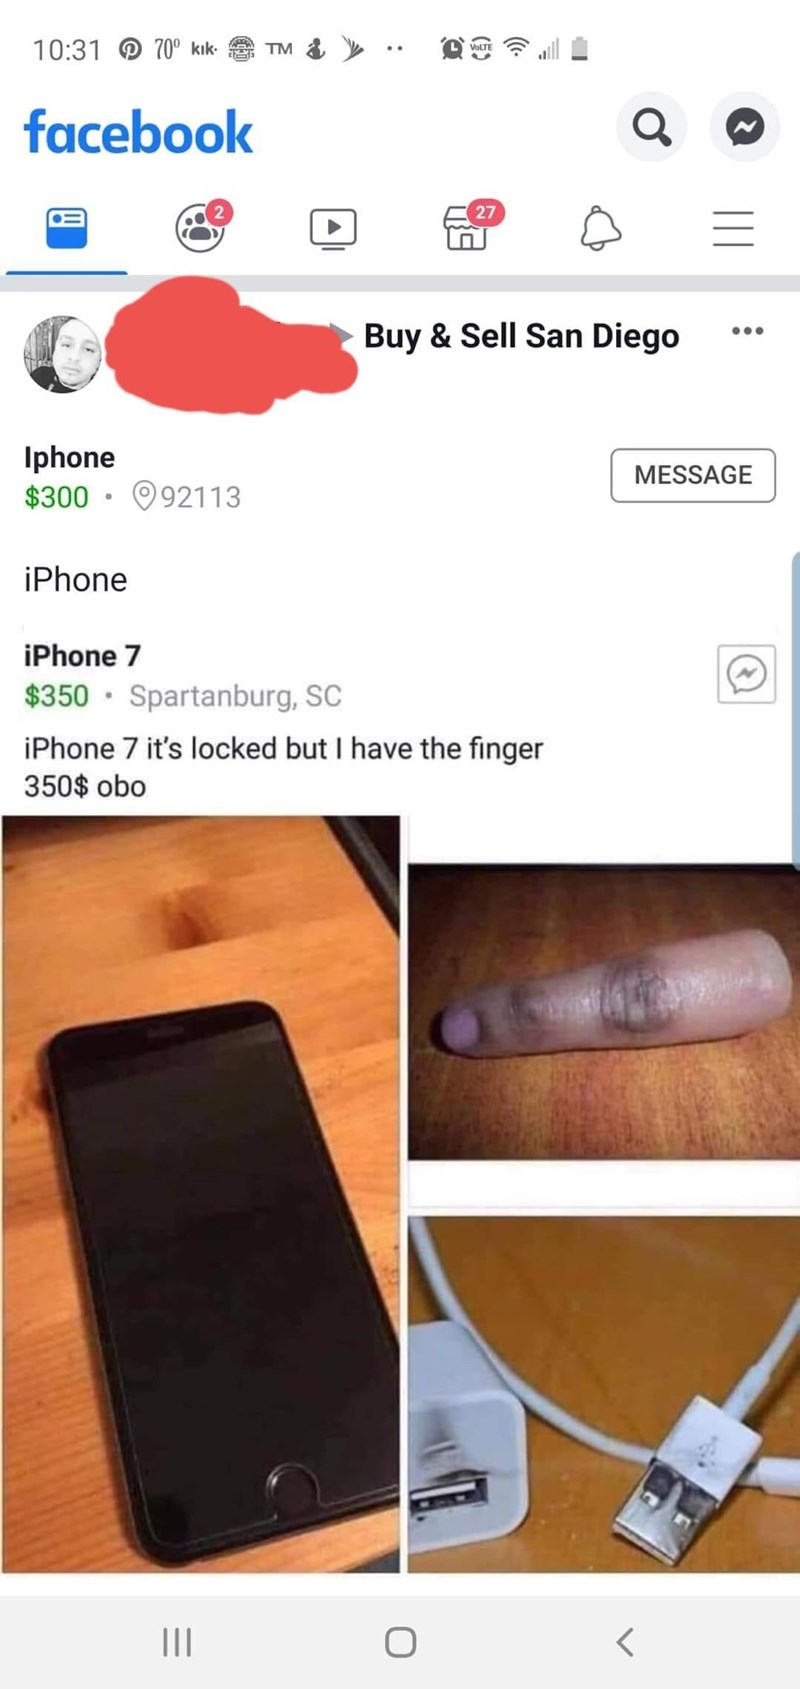 Material property - 10:31 70° kik TM VoLTE facebook 27 Buy & Sell San Diego Iphone $300 92113 MESSAGE iPhone iPhone 7 $350 Spartanburg, SC iPhone 7 it's locked but I have the finger 350$ obo 11 (.